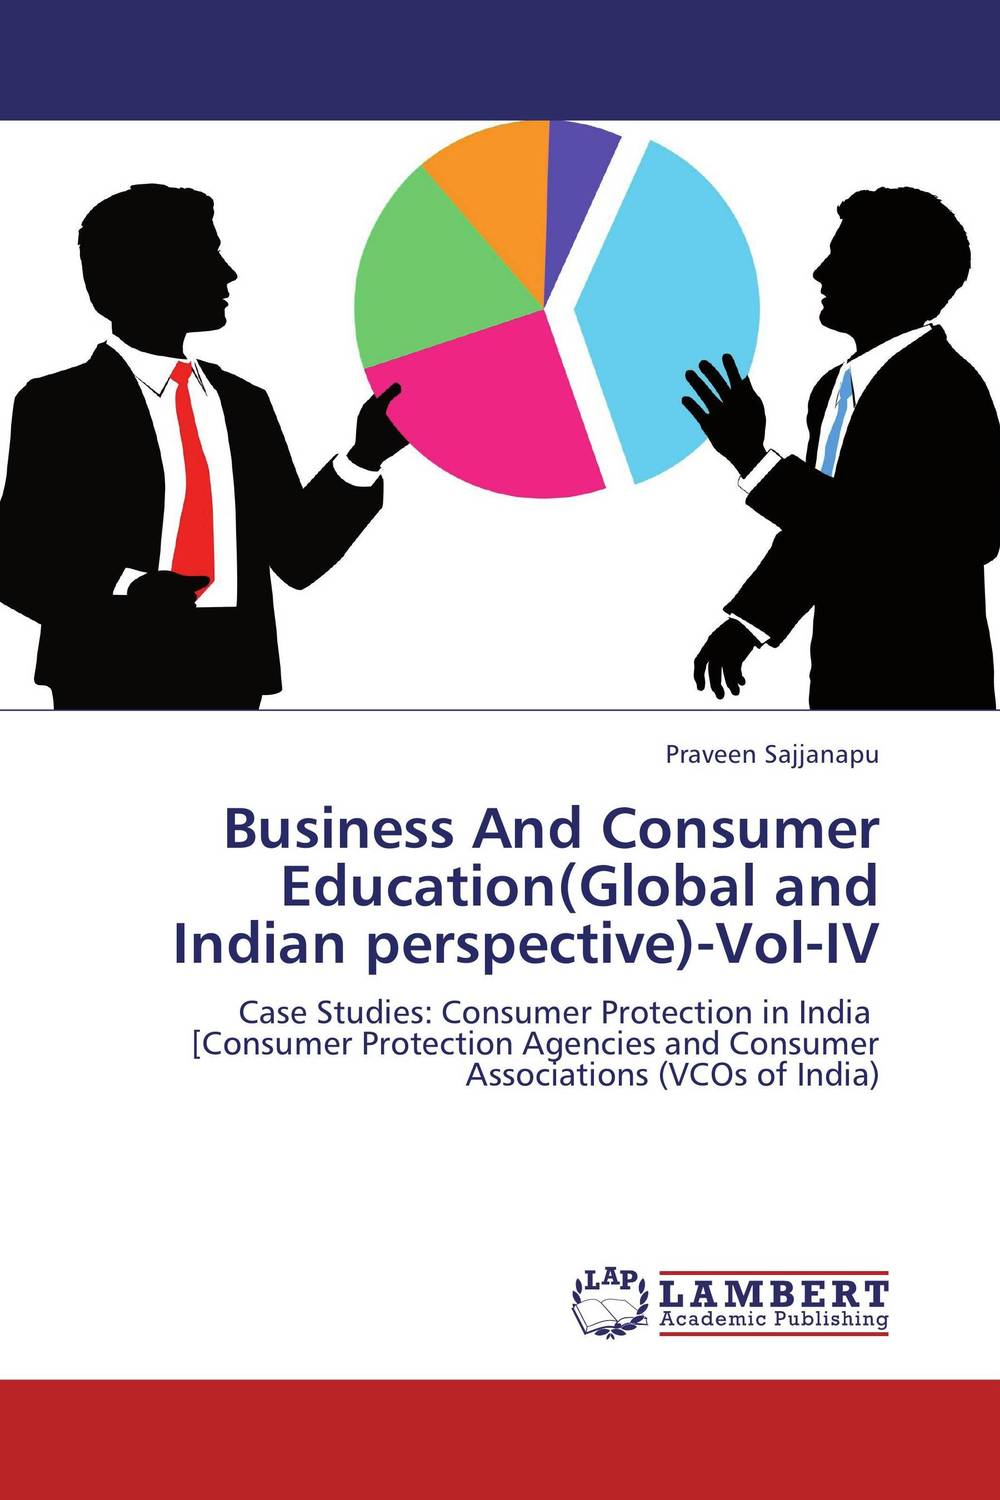 где купить  Business And Consumer Education(Global and Indian perspective)-Vol-IV  по лучшей цене